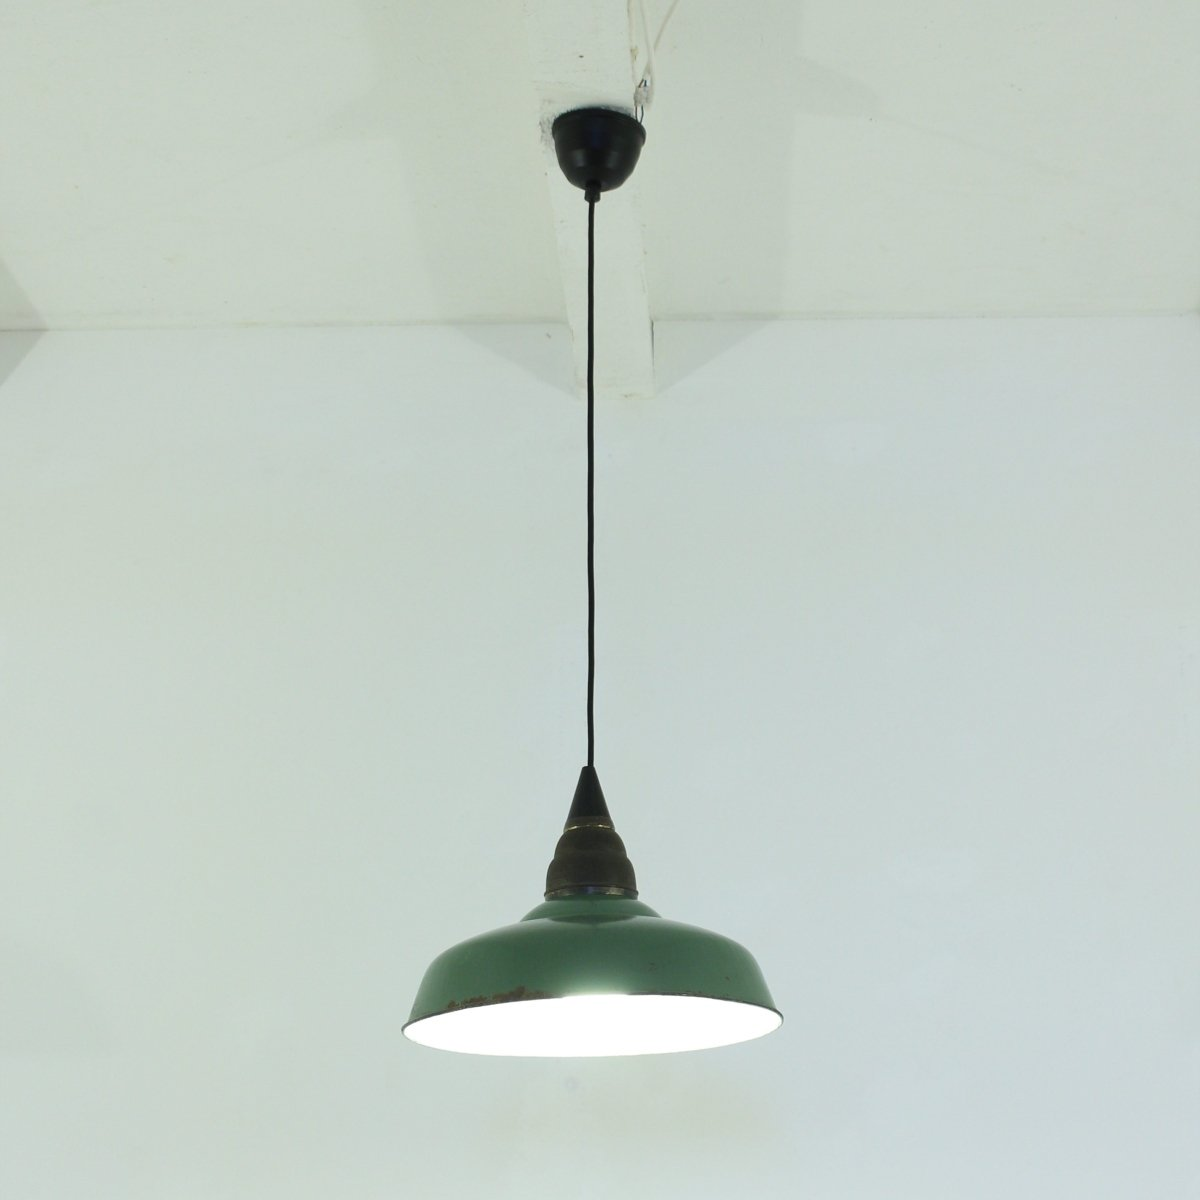 Vintage Industrial Green Workshop Pendant Lamp 1930s For Sale At Pamono